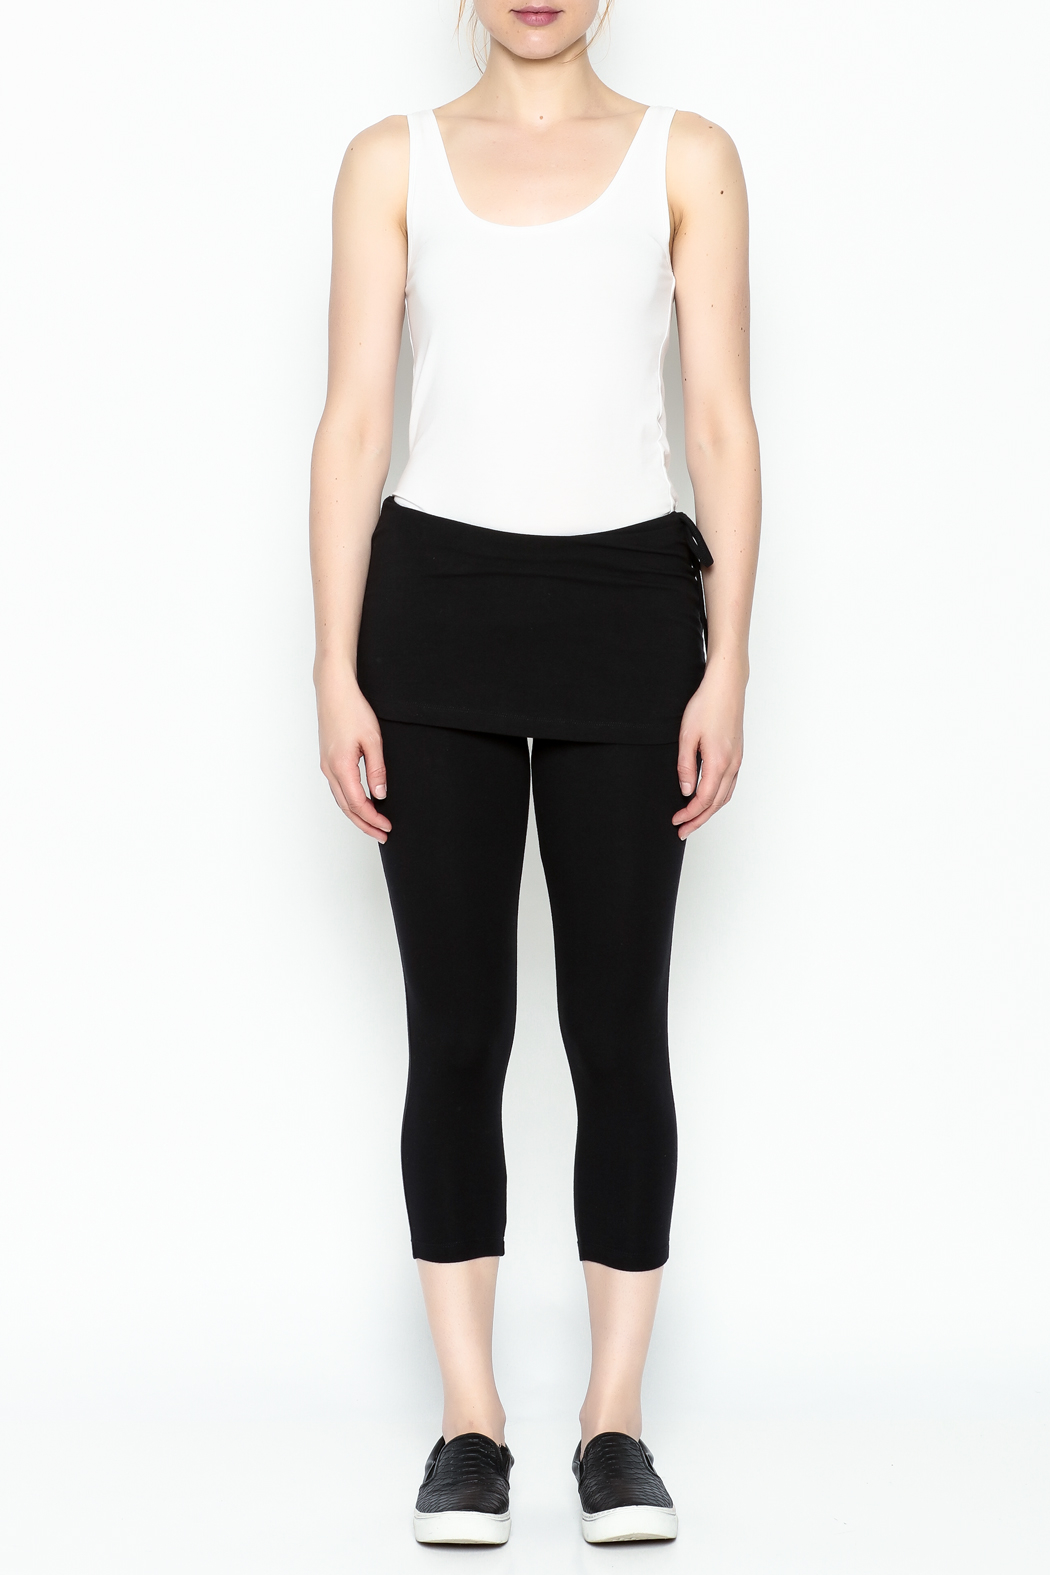 Made on Earth Skirted Legging - Front Full Image